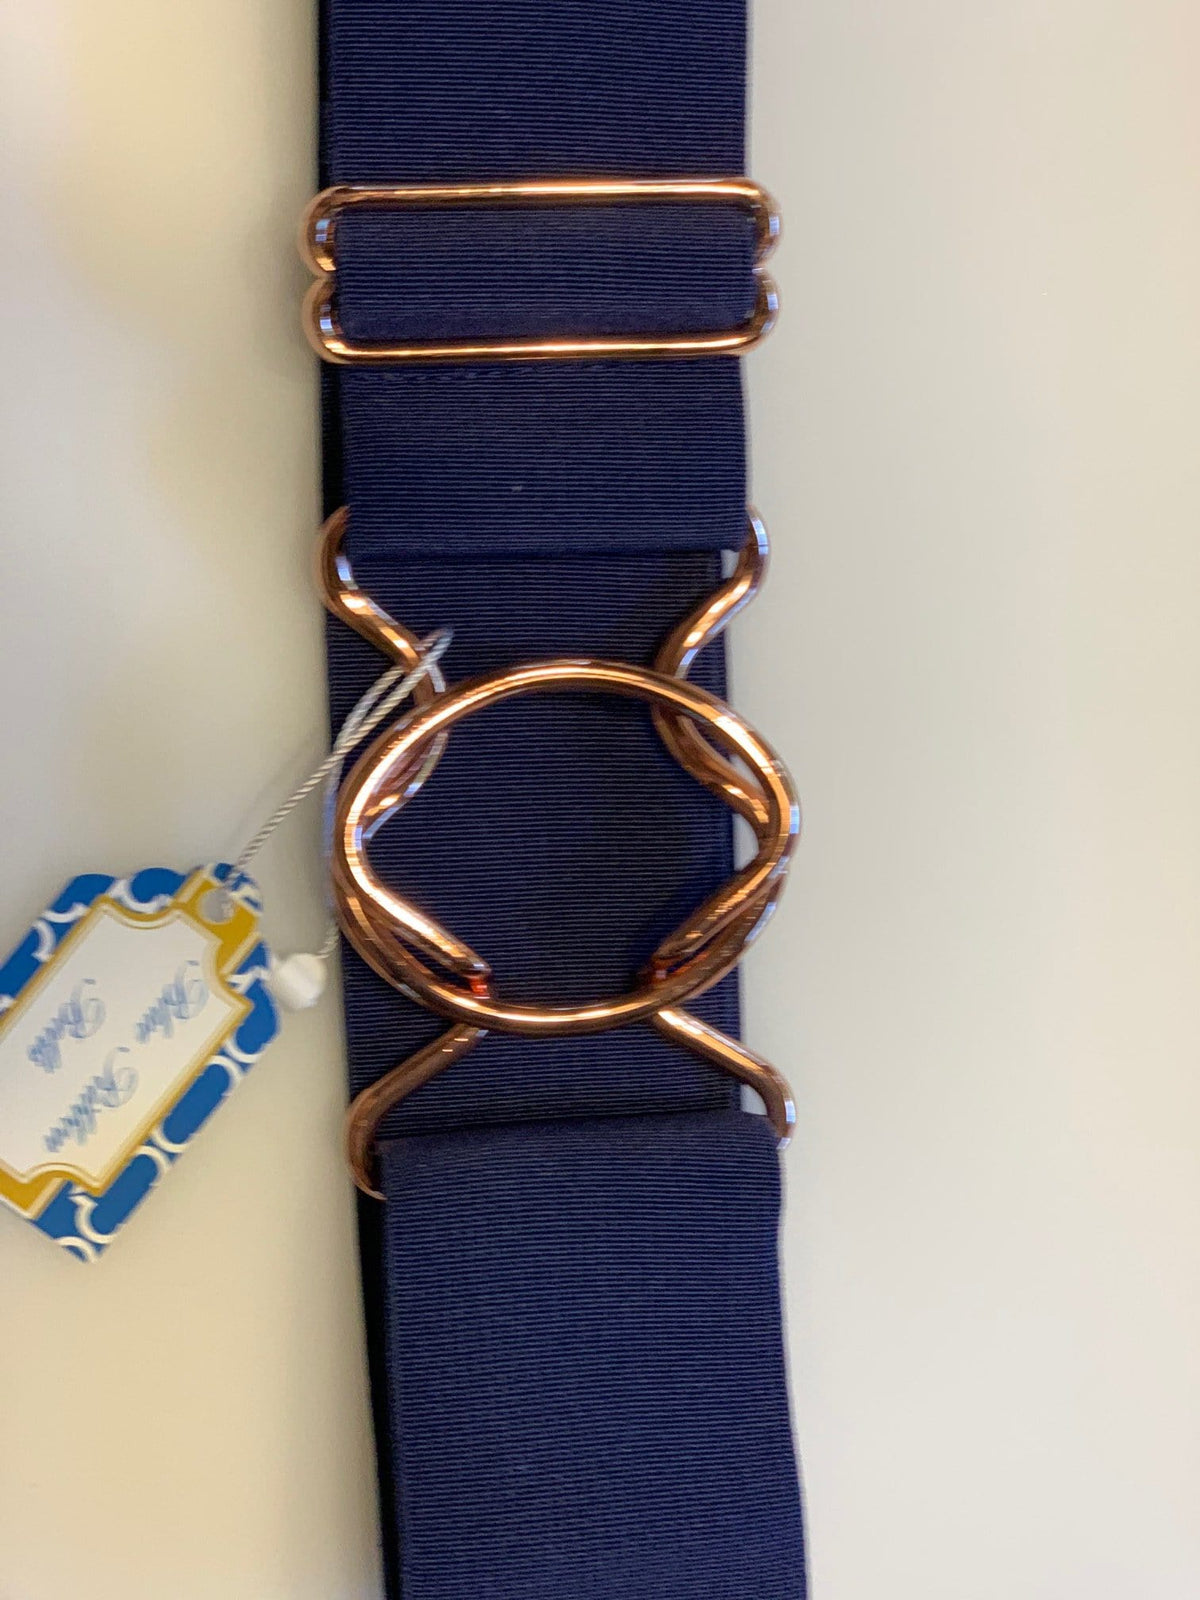 Blue Ribbon Belts Belt Navy with Rose Gold Buckle Blue Ribbon Belts - 2 Inch equestrian team apparel online tack store mobile tack store custom farm apparel custom show stable clothing equestrian lifestyle horse show clothing riding clothes horses equestrian tack store